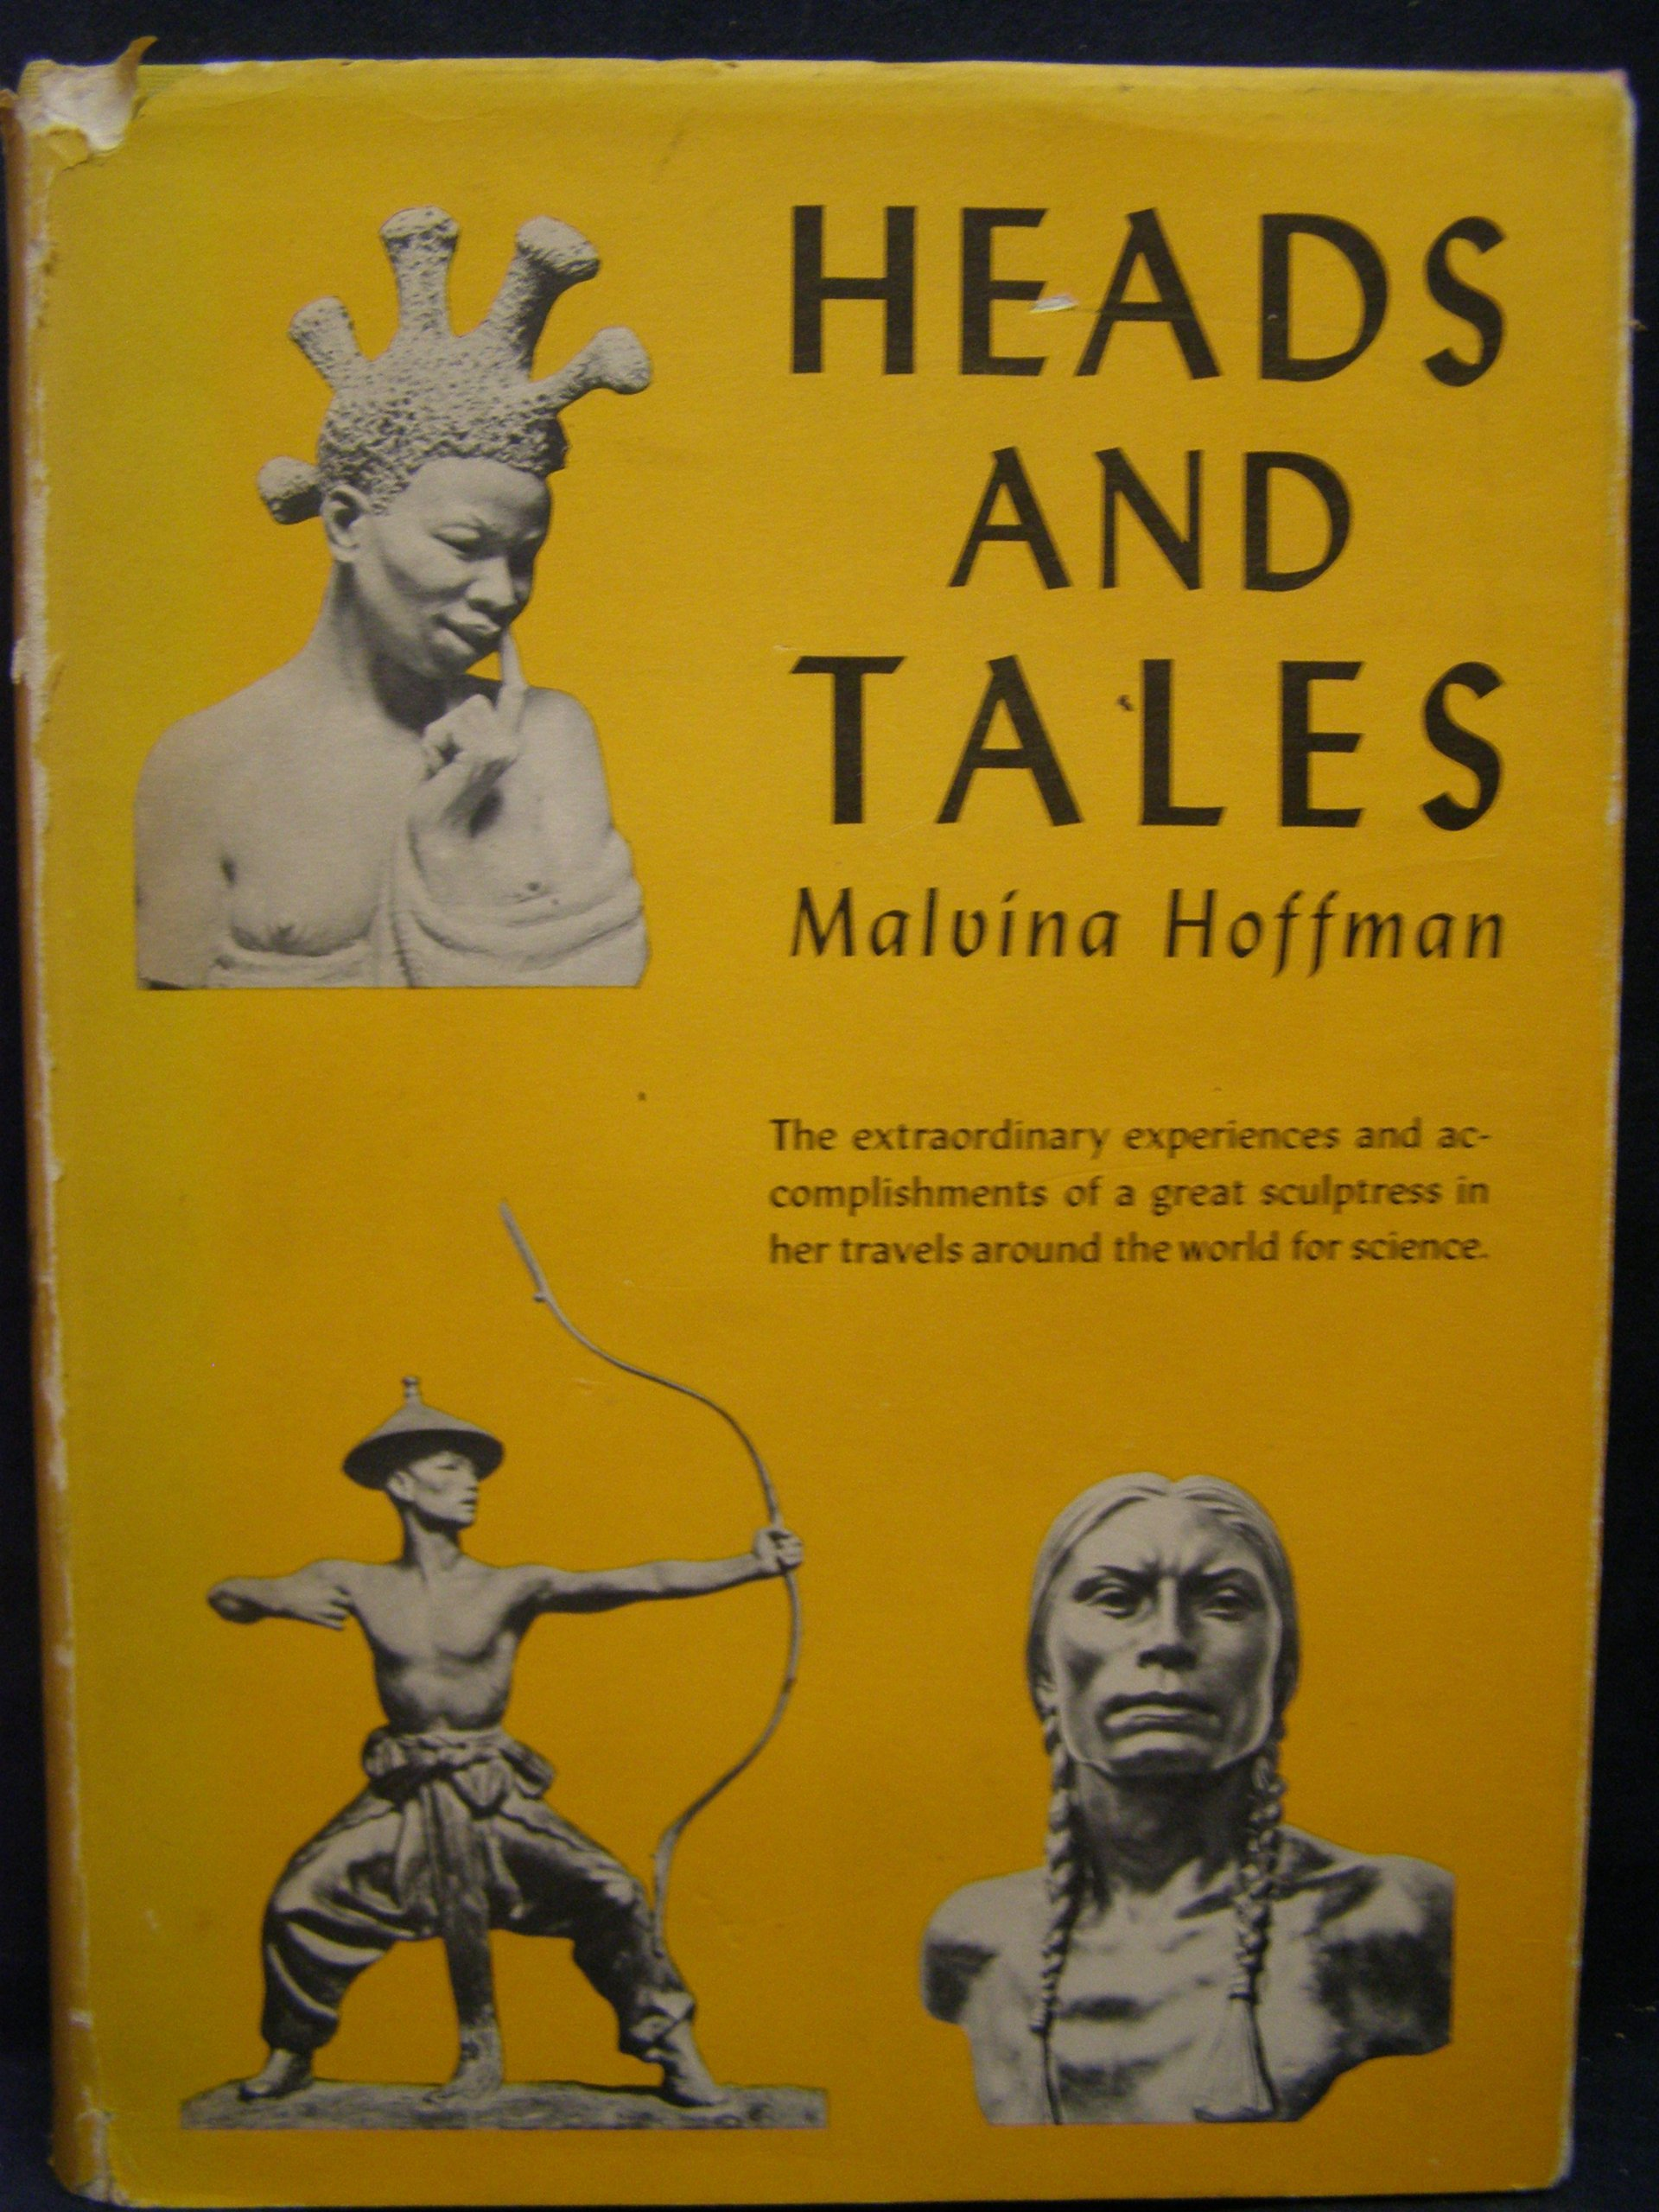 Heads and tales, Hoffman, Malvina